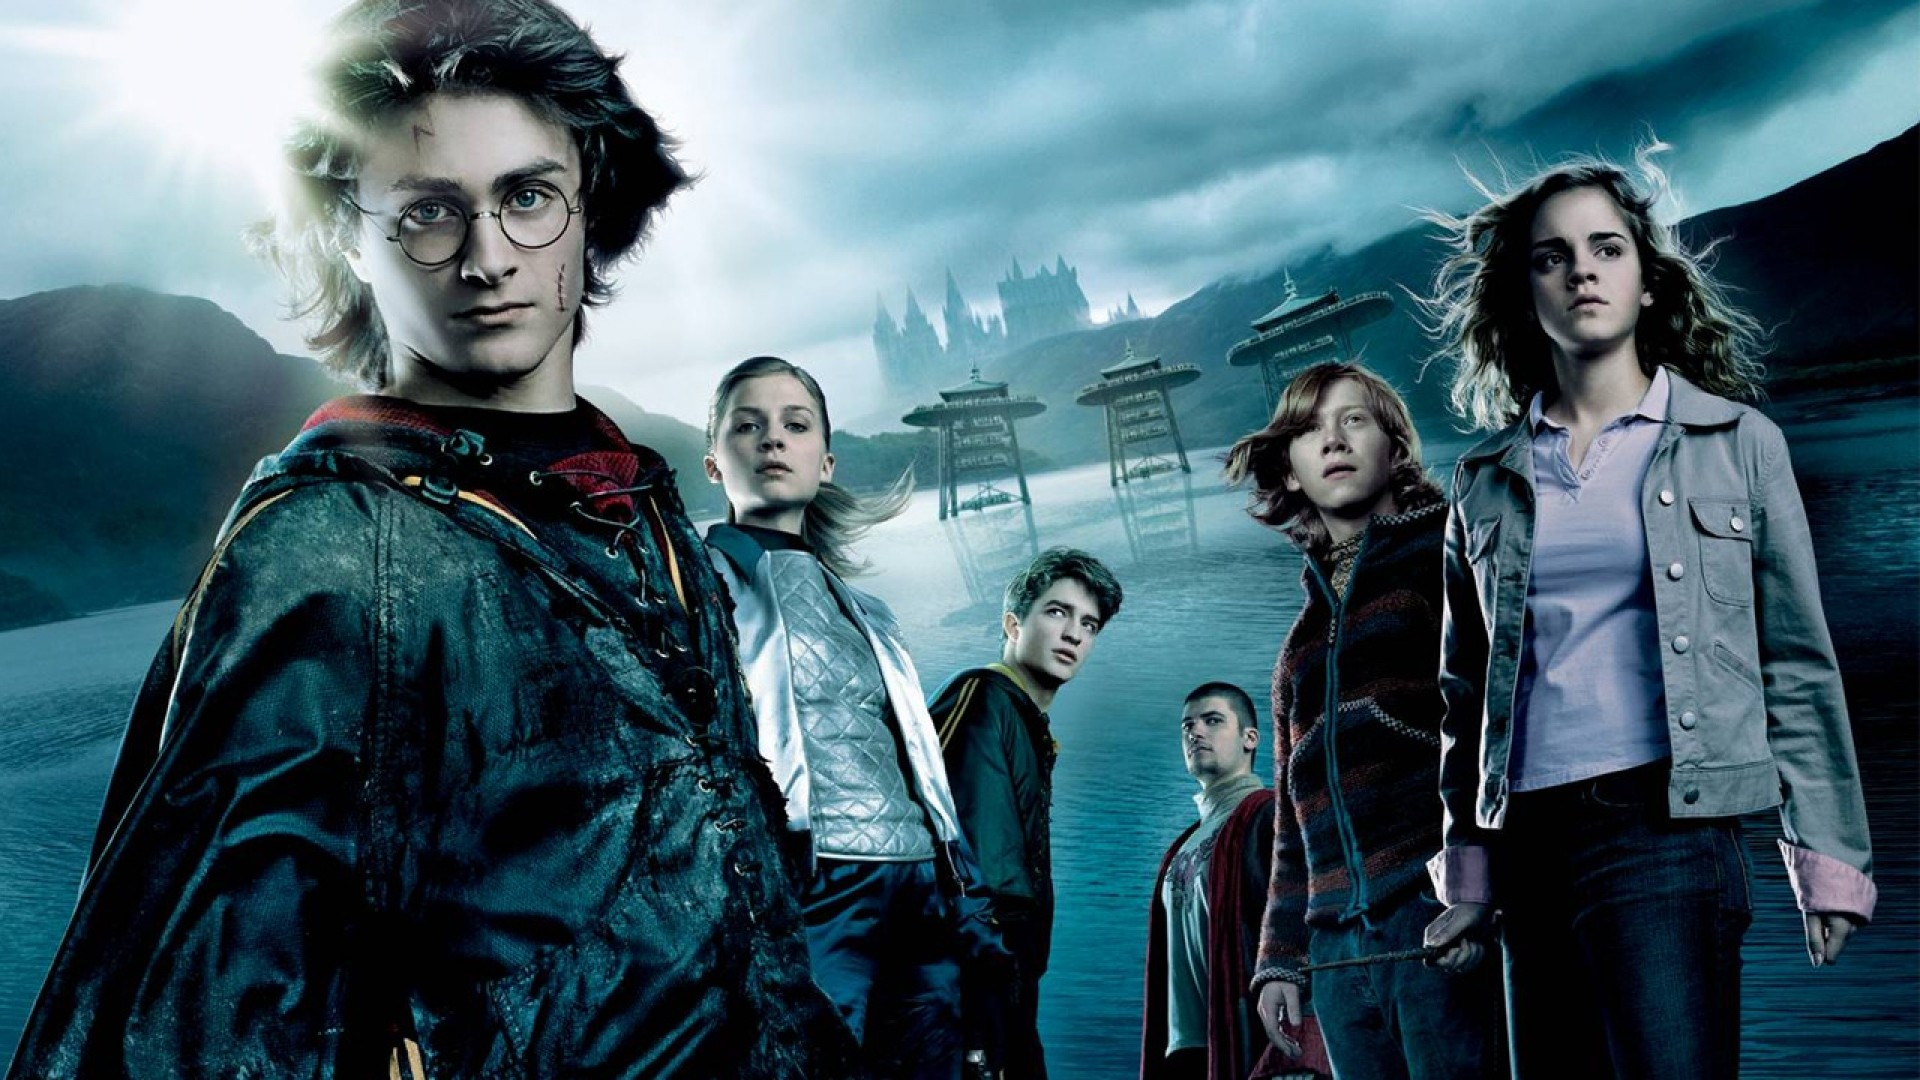 Wallpaper harry potter and the goblet of fire, main characters,  costume